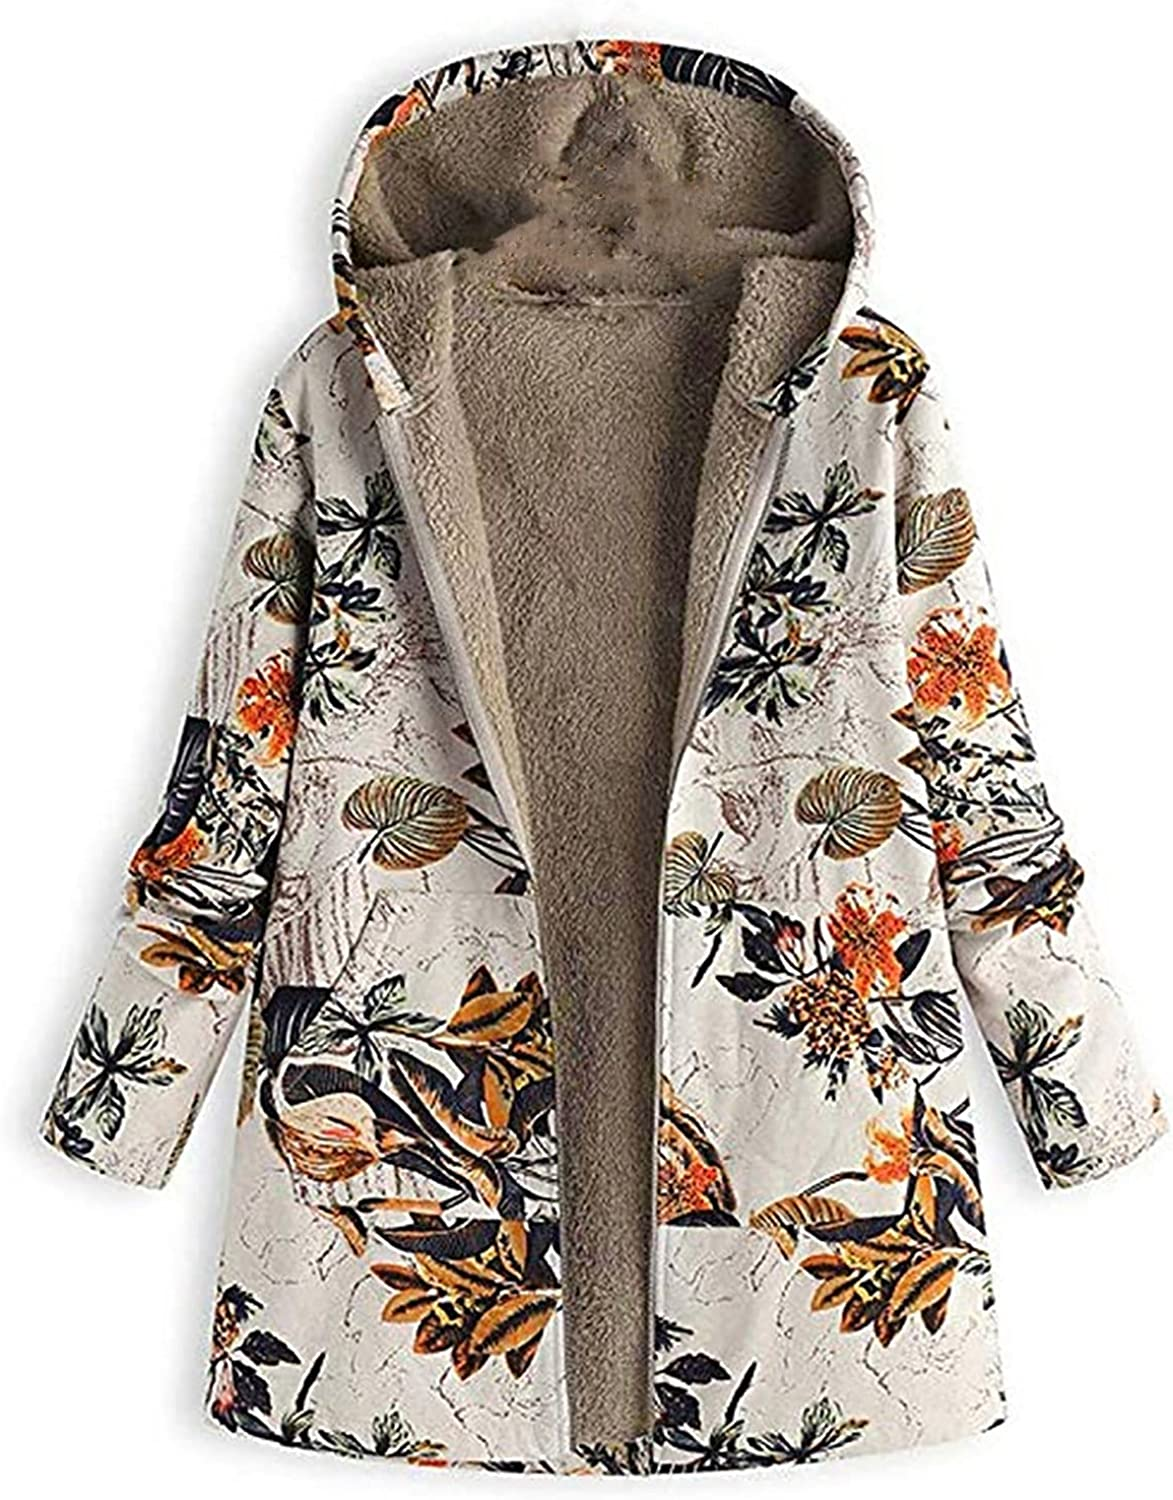 Womens Winter Warm Hooded Coats Floral Print Zip Up Sweater Jacket Long Sleeve Vintage Oversize Coats with Pockets